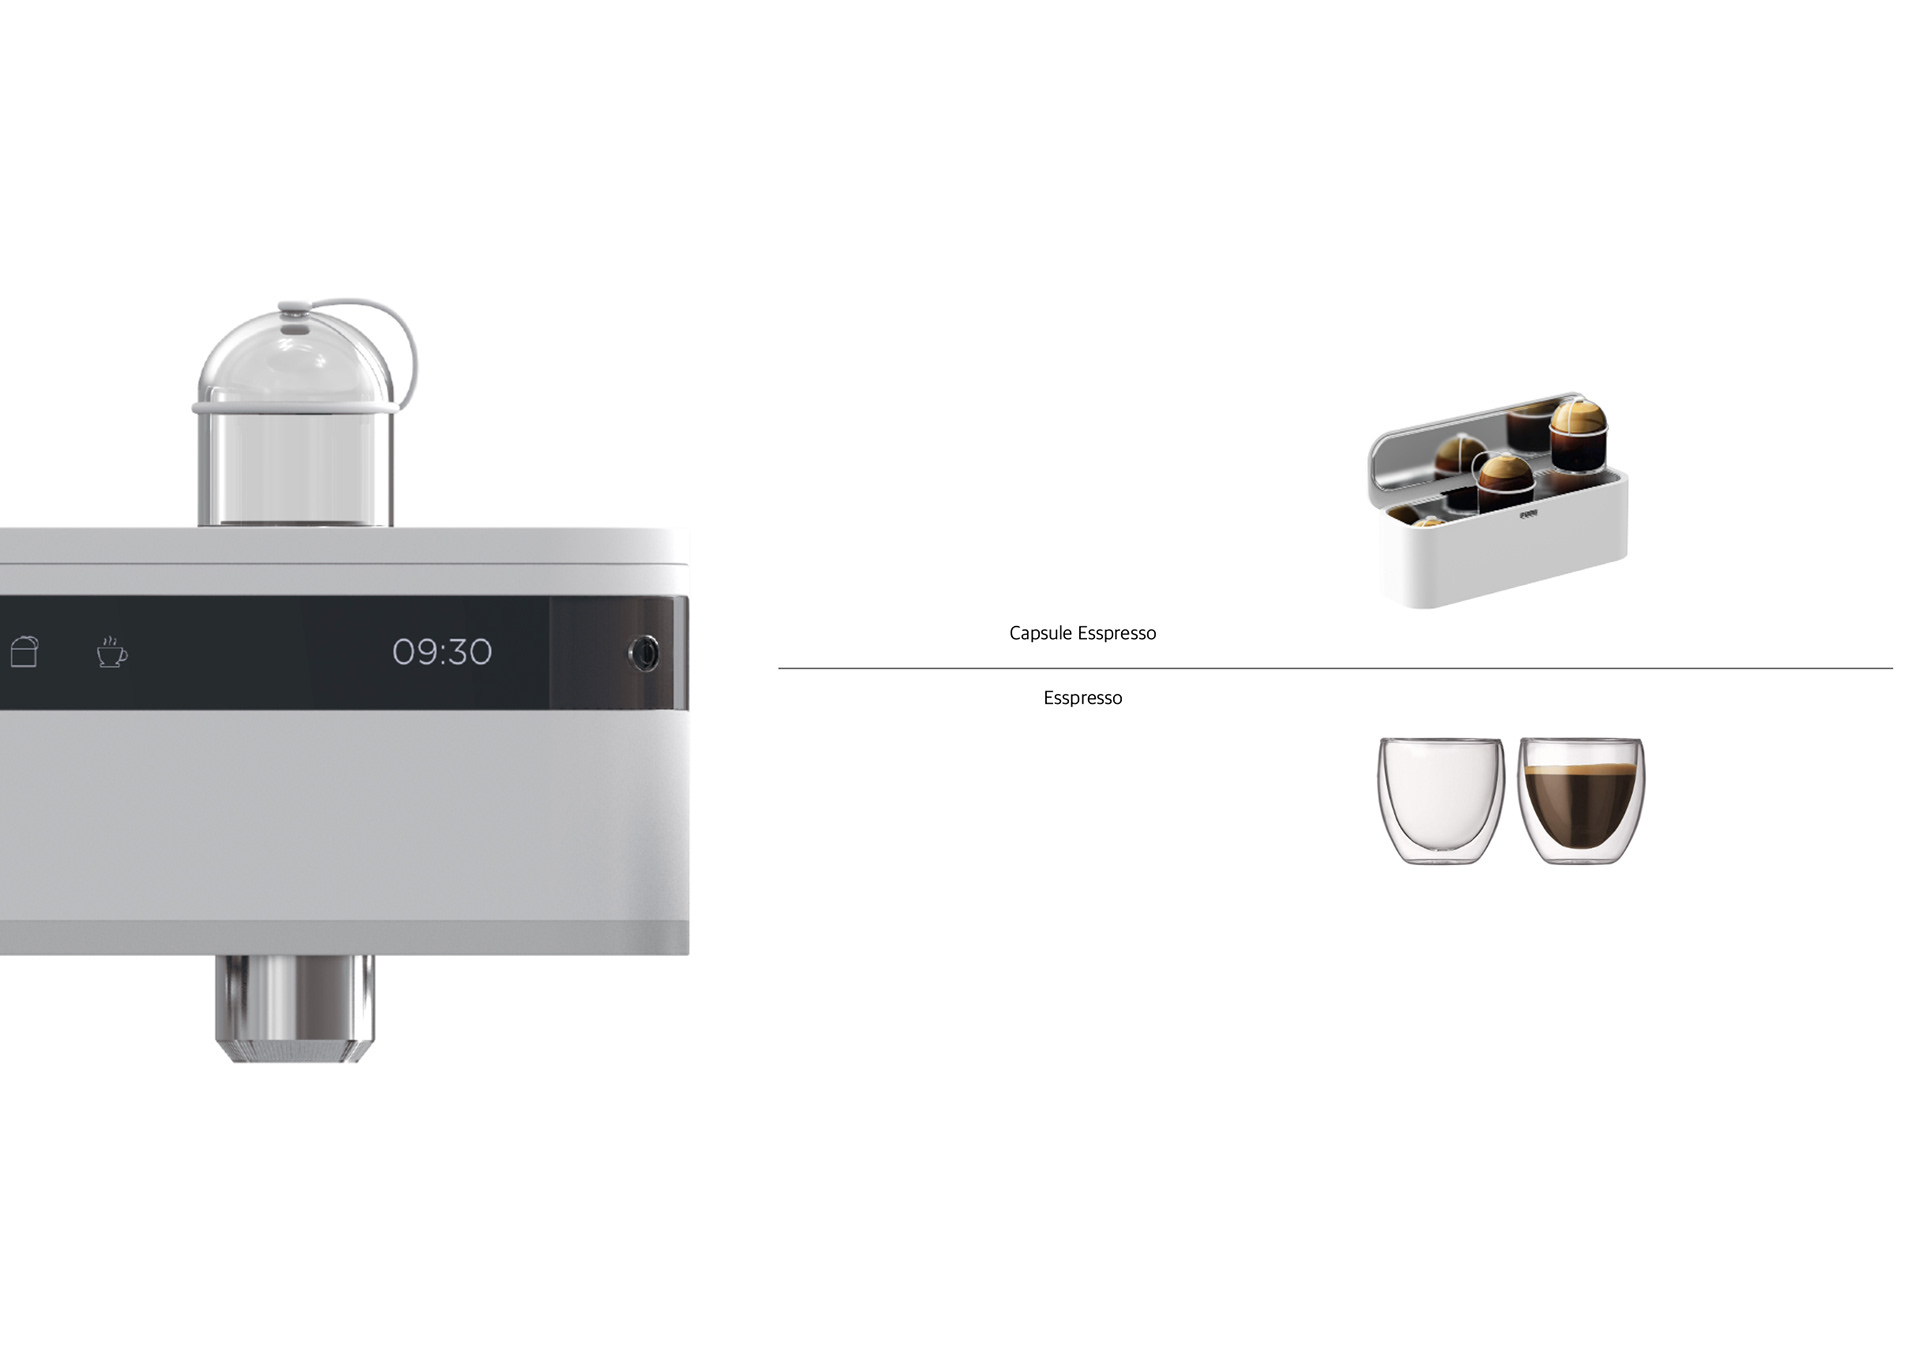 Designing your own capsule expresso on the go - Industrial Design